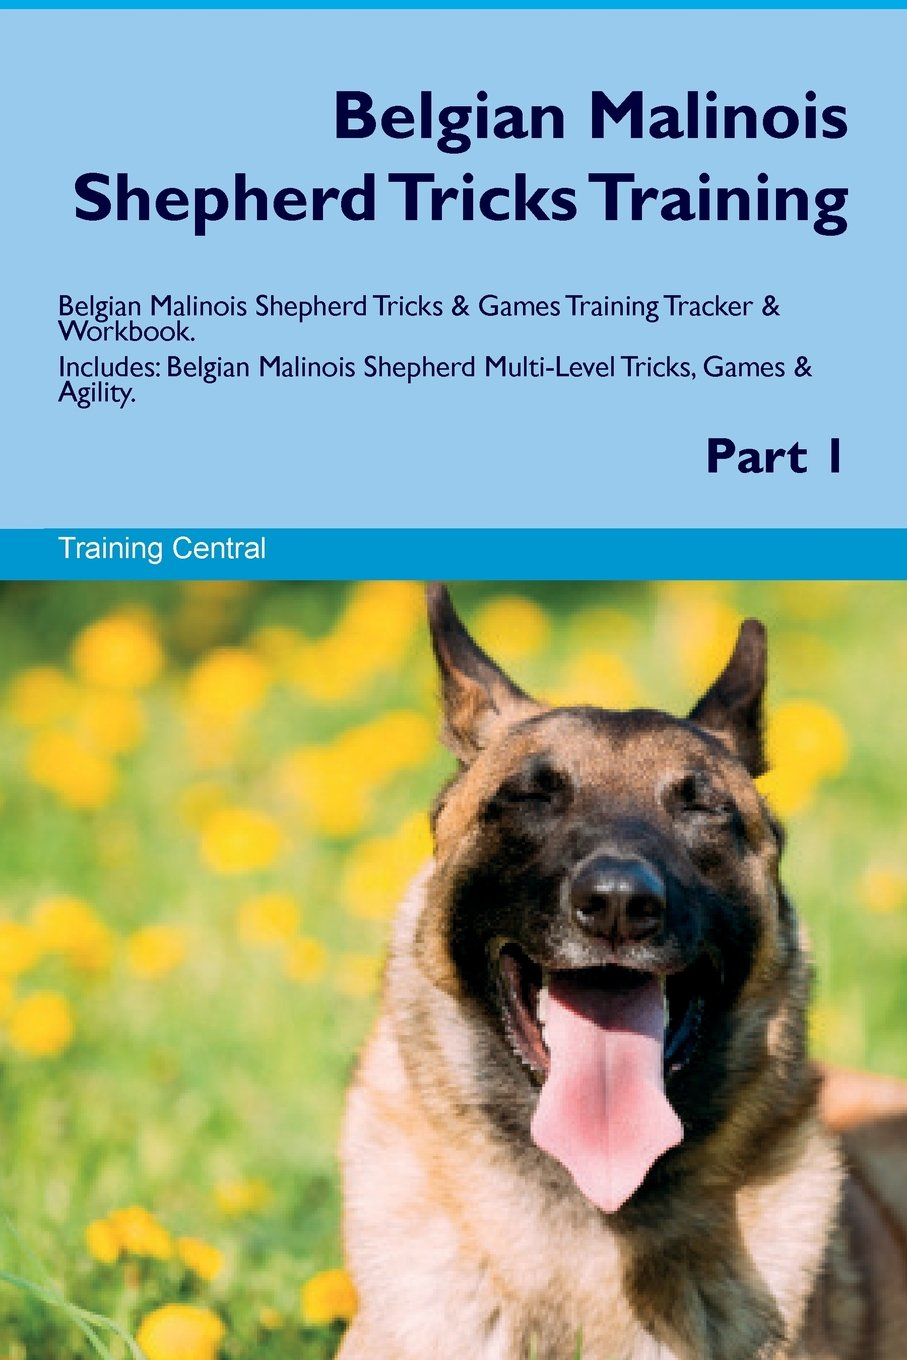 Belgian Malinois Shepherd Tricks Training Belgian Malinois Shepherd Tricks & Games Training Tracker & Workbook. Includes: Belgian Malinois Shepherd Multi-Level Tricks, Games & Agility. Part 1